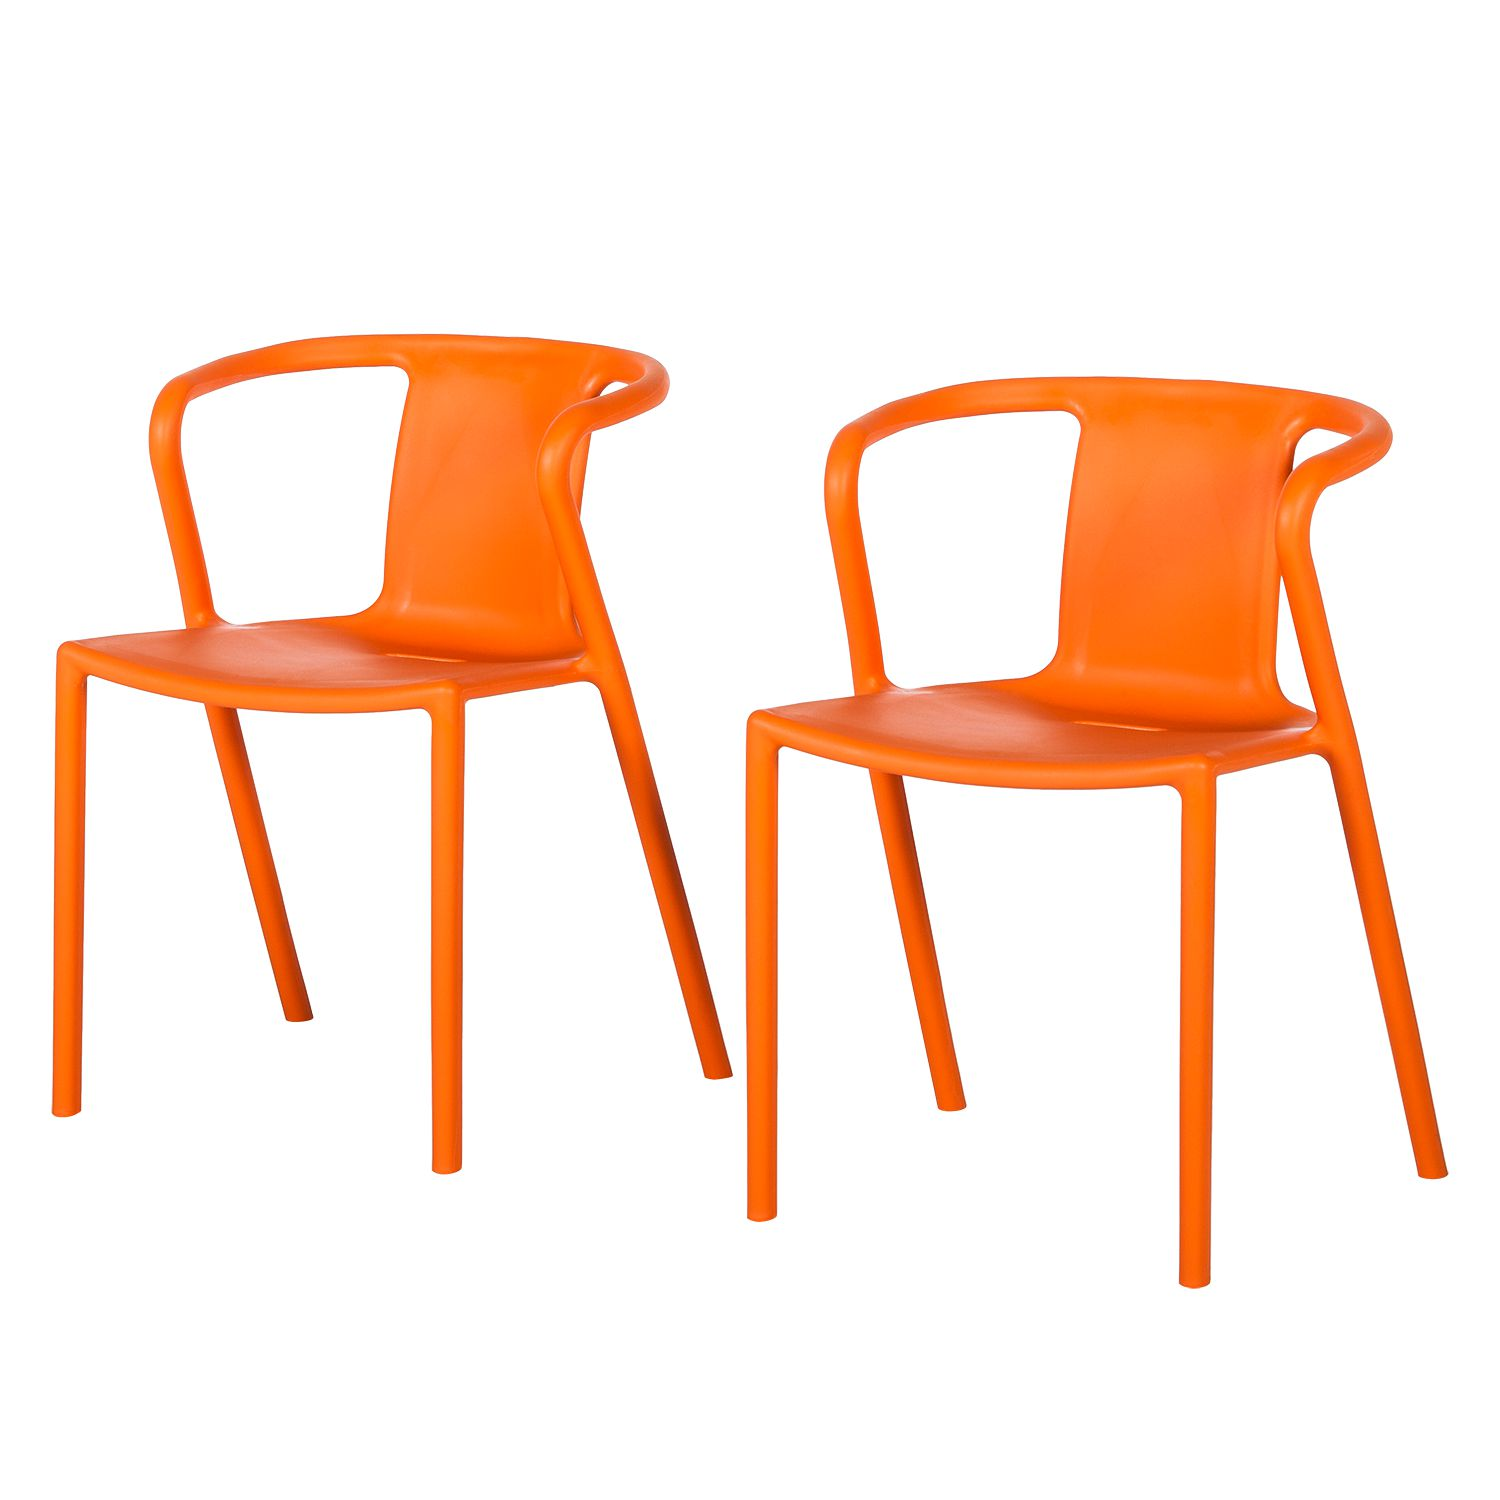 Chaise accoudoirs sit up orange fredriks meubles en ligne for Ameublement en ligne